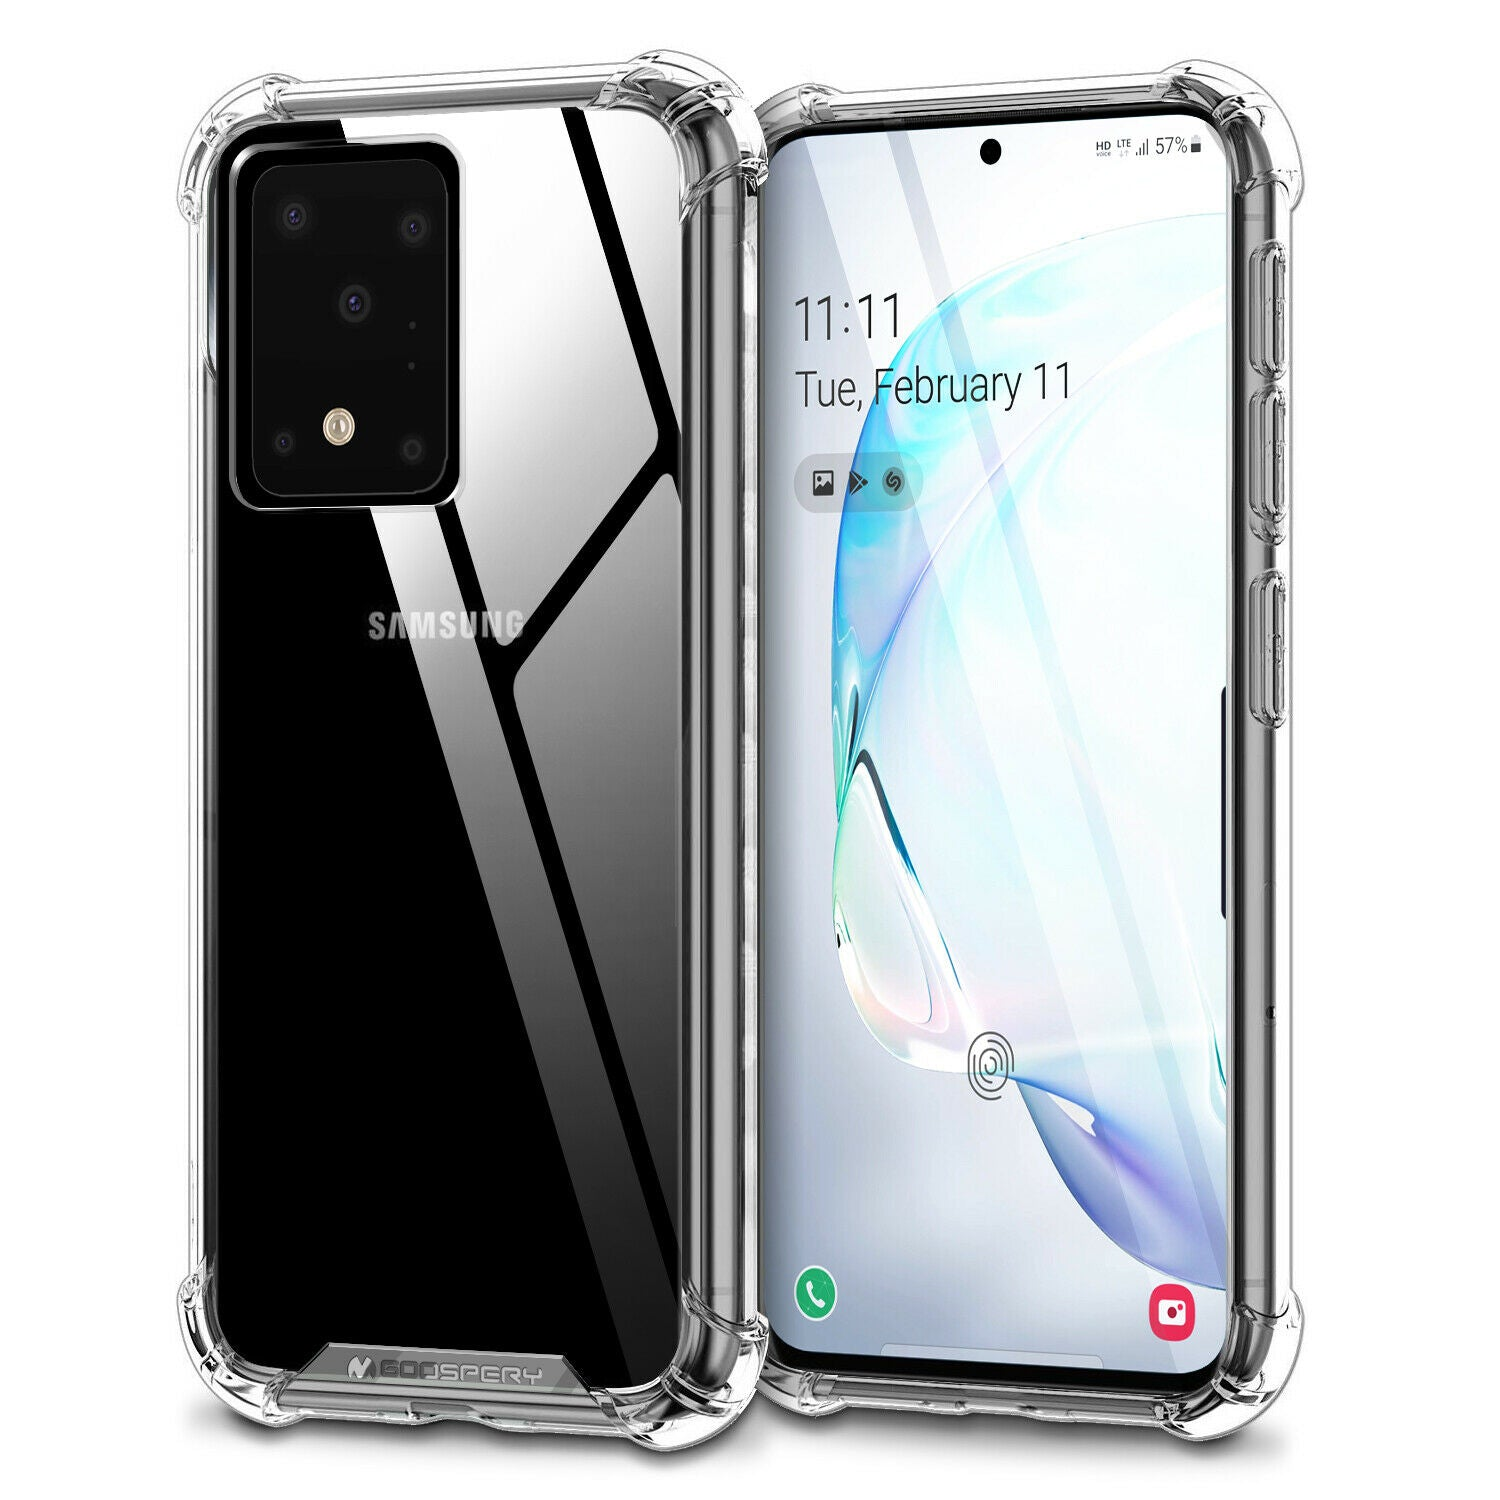 GOOSPERY Super Protect Clear Case for Samsung S20 Plus / S20